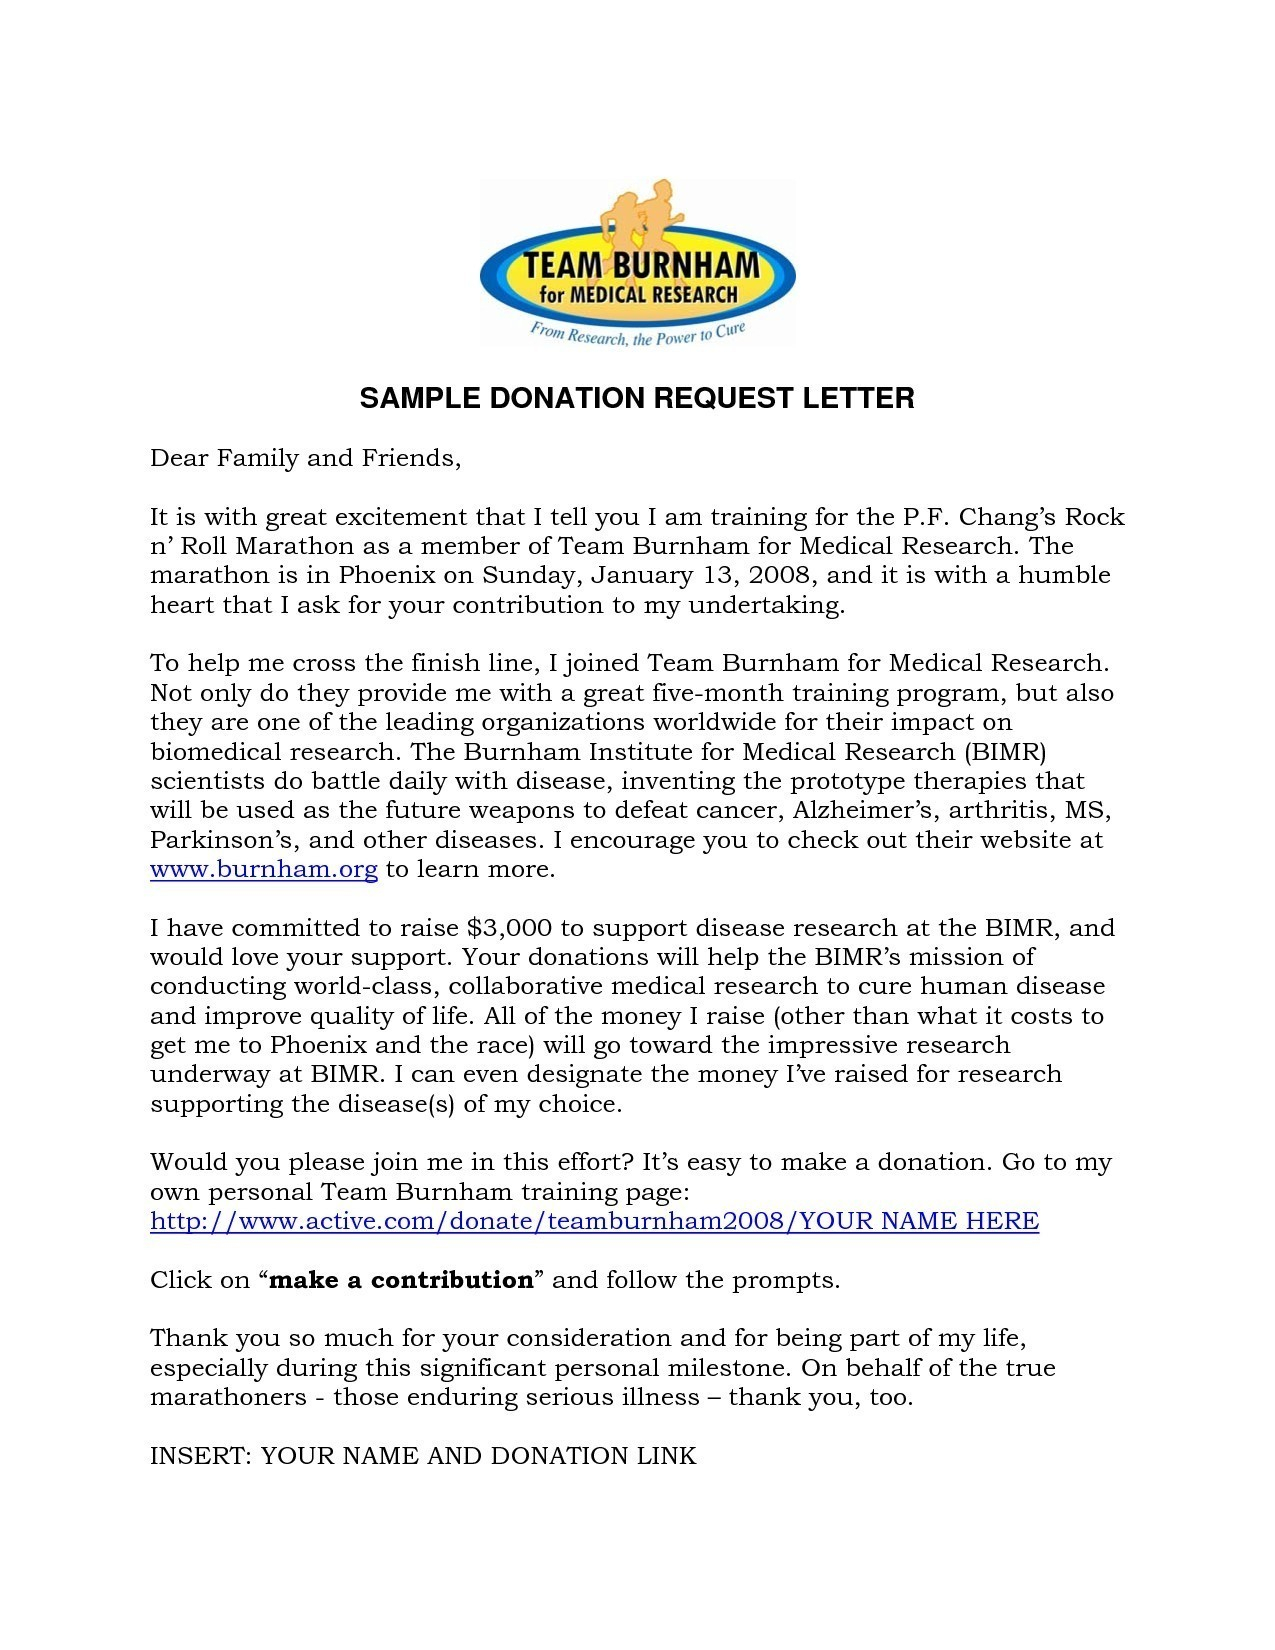 Personal Donation Letter Template - Samples Letters Request Donation New Sample Letters for Request for